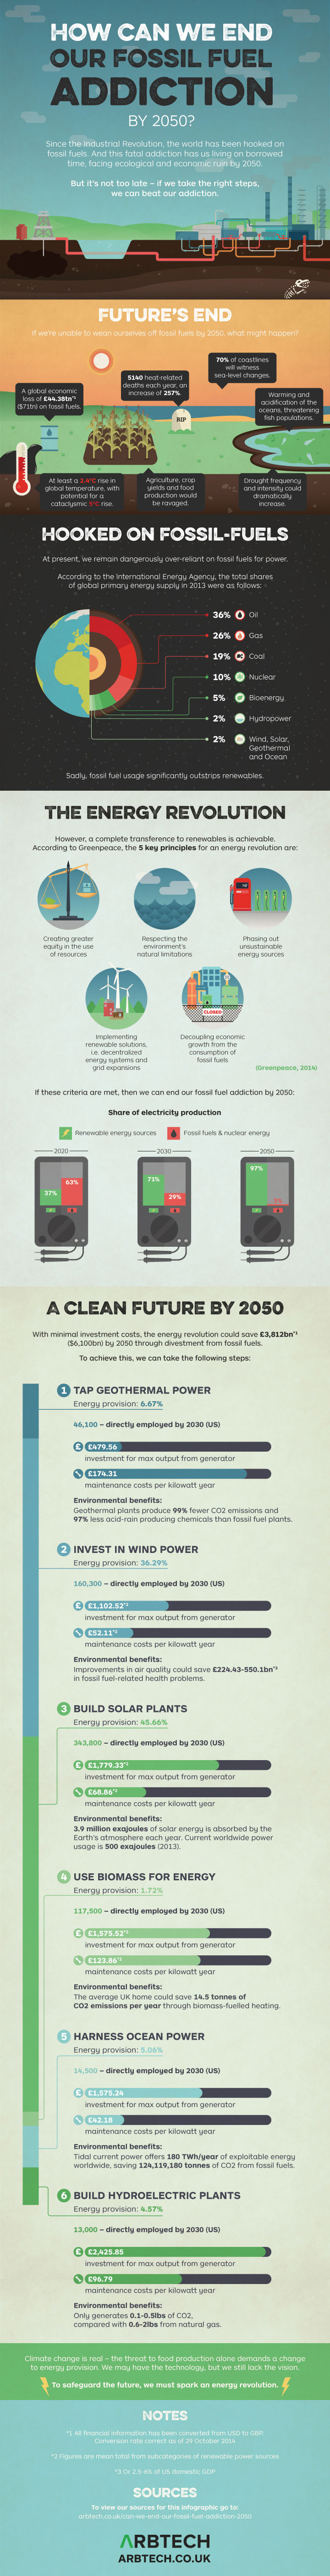 geothermal power, wind power, solar power, fossil fuels, fossil fuel addiction, climate change, global warming, ending fossil fuel addiction, stop global warming, stop climate change, infographic, renewable energy, shifting to renewable energy